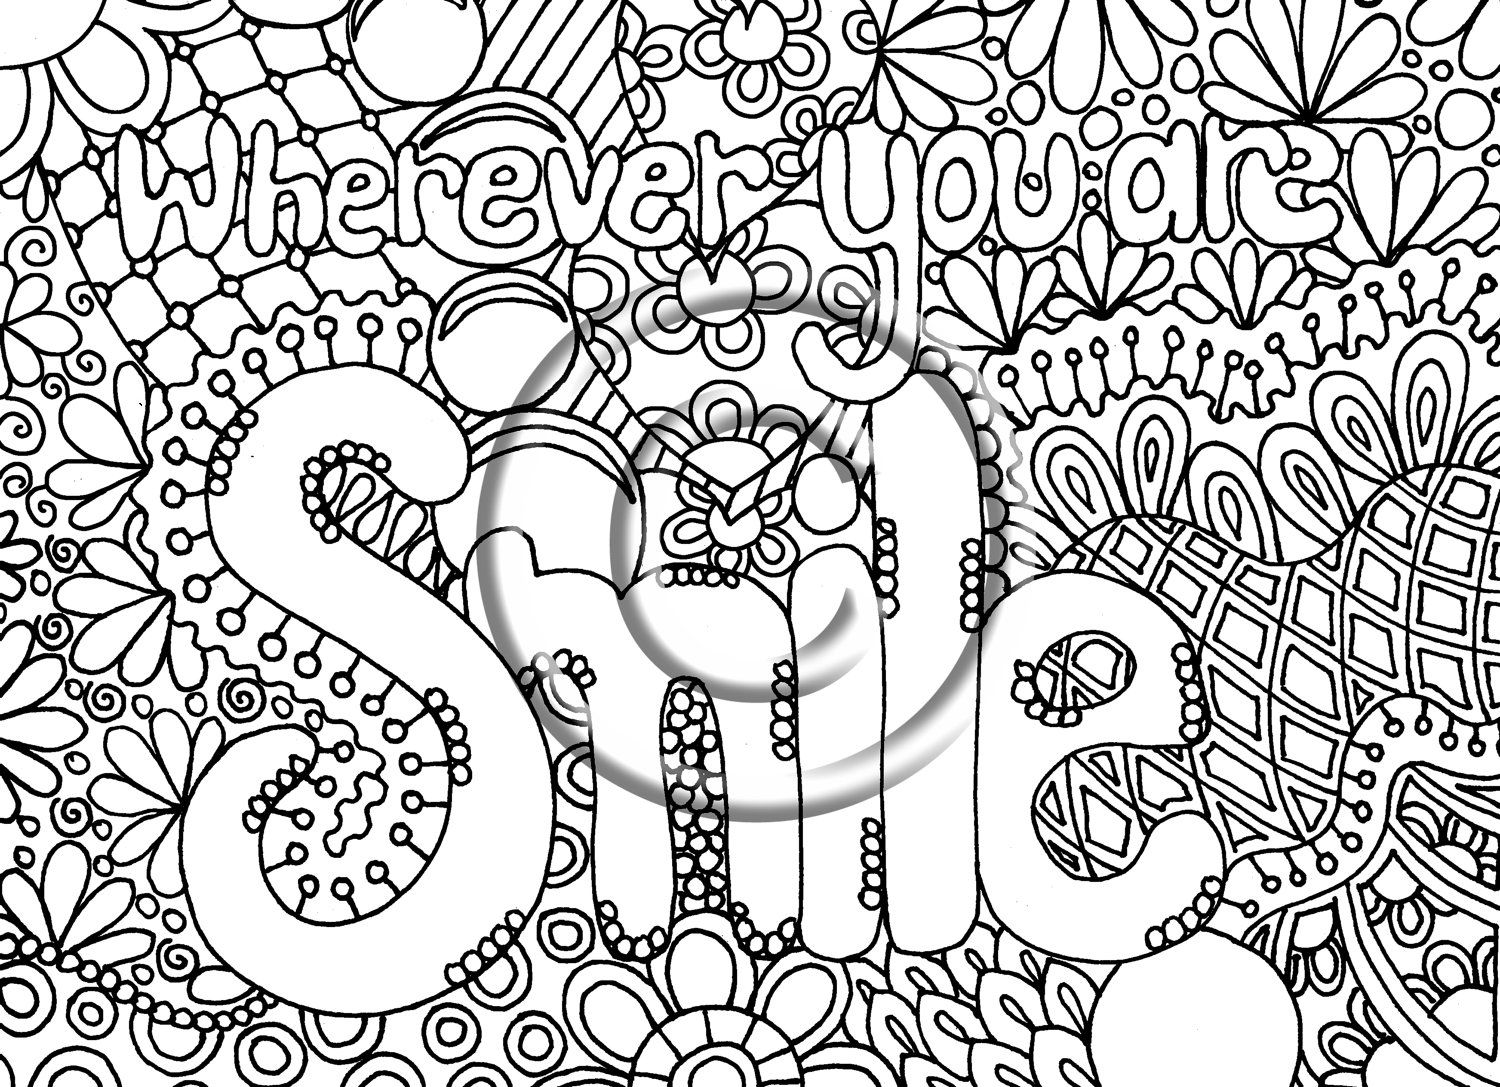 Digital download coloring page hand drawn zentangle for Free printable abstract coloring pages